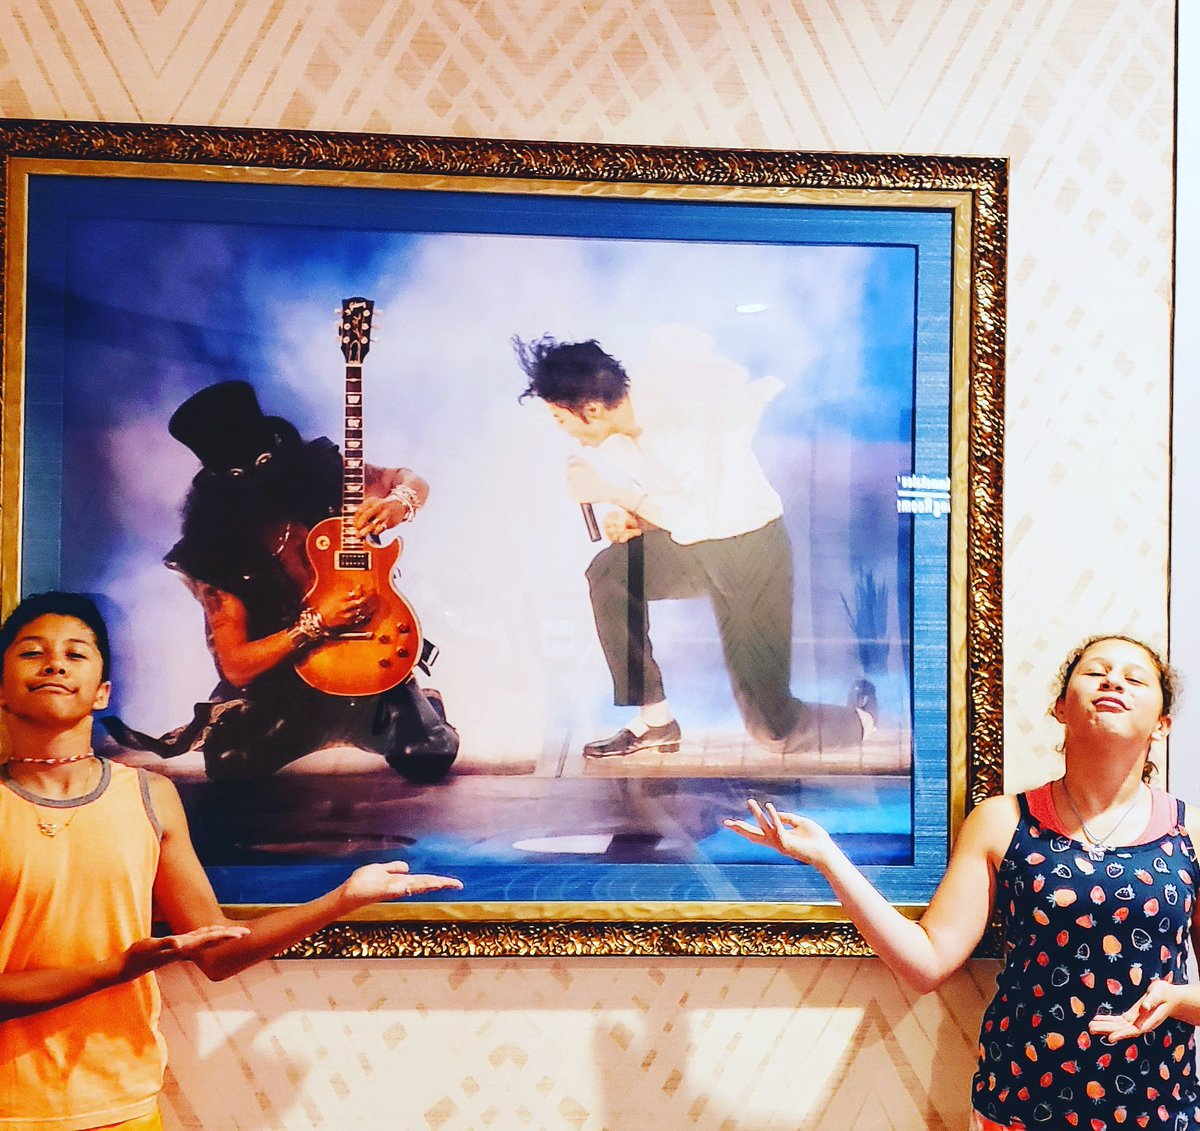 Awesome picture at Hard Rock Atlantic City! @michaeljackson @slash<br>http://pic.twitter.com/pomT9pZzuU